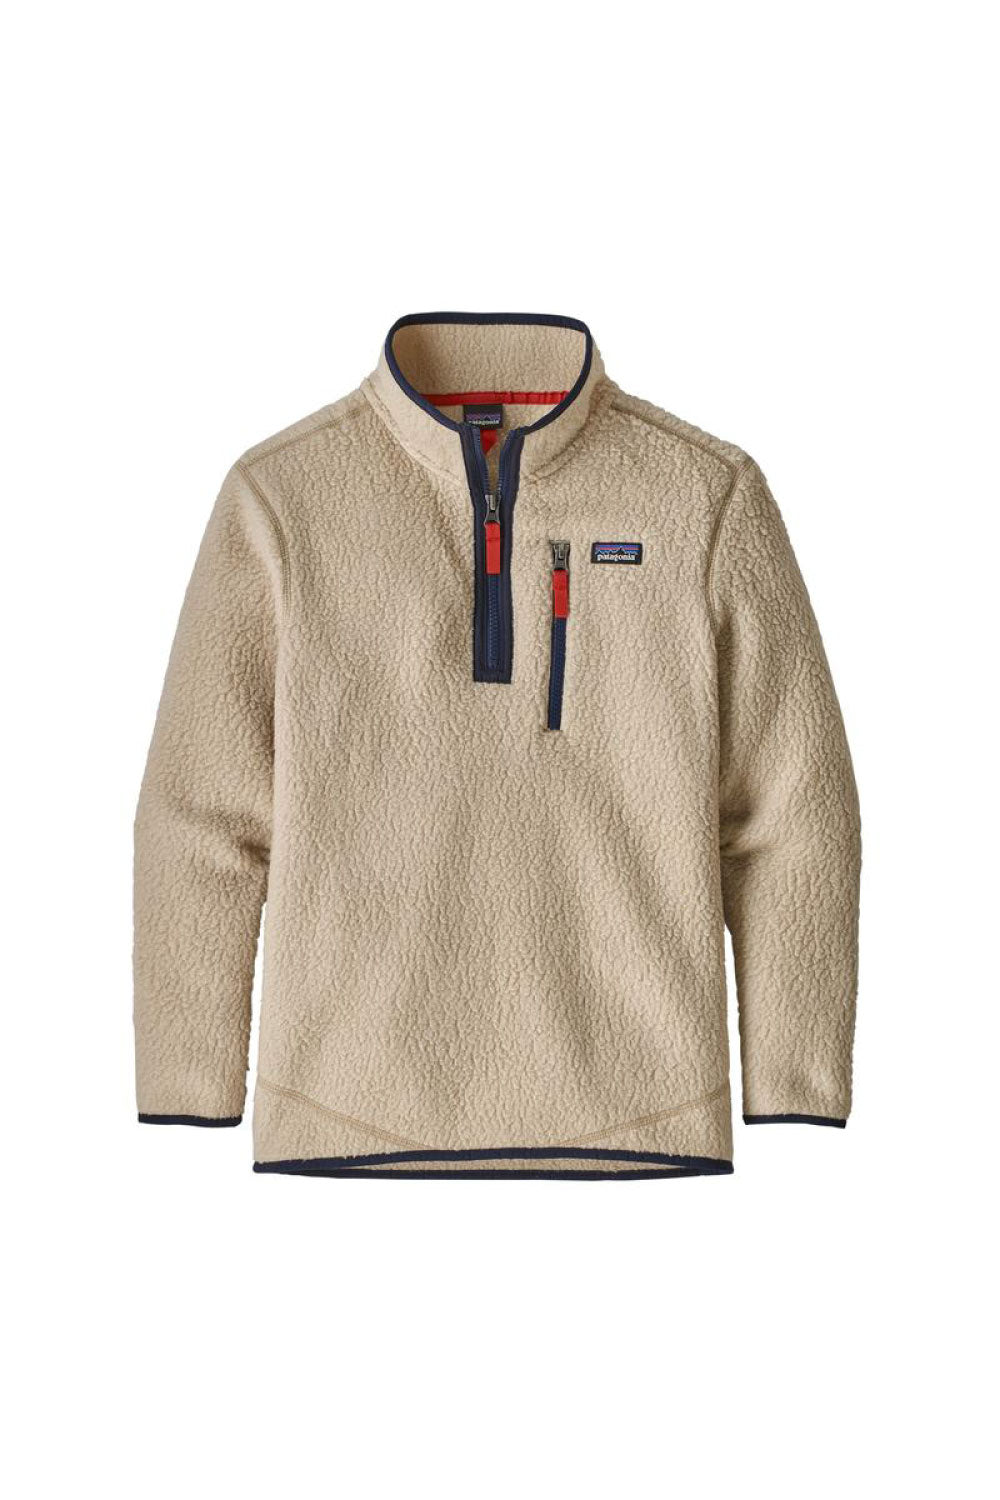 Patagonia Boy's Retro Pile 1/4 Zip Jumper